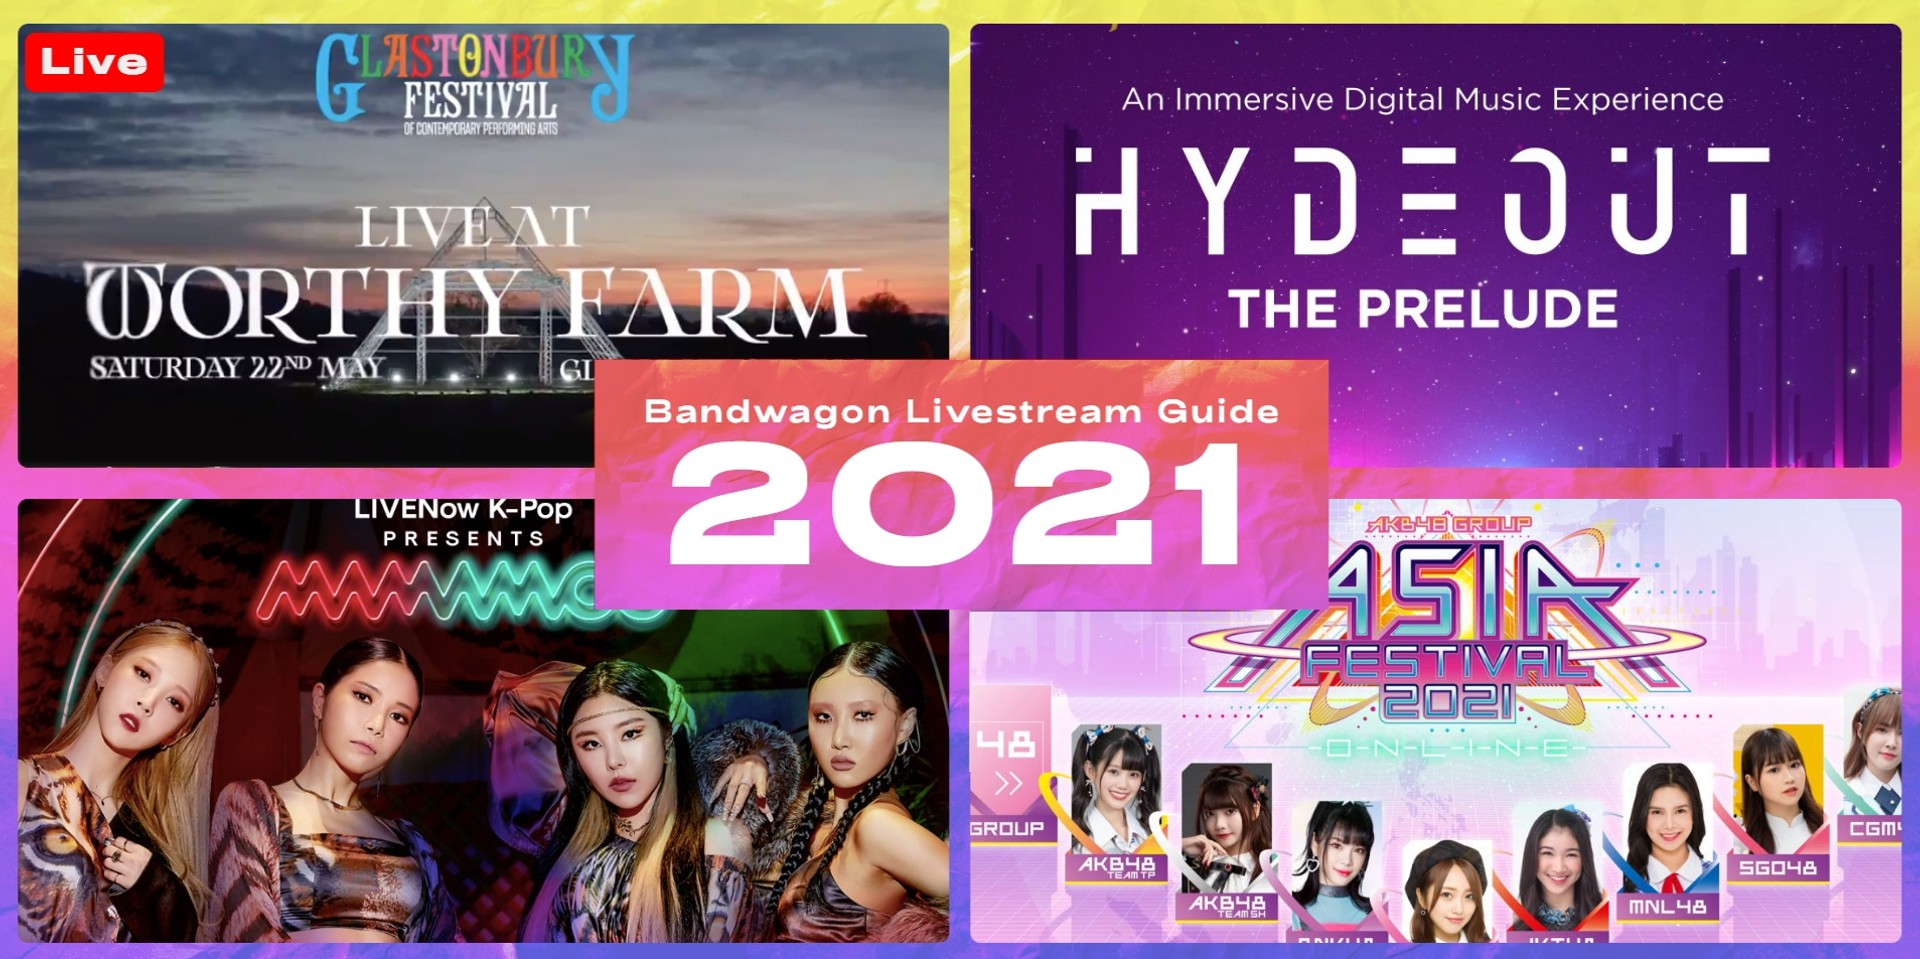 Online concerts and festivals to stream in 2021 - Hydeout, Glastonbury Festival, MAMAMOO, AKB48 Group, and more